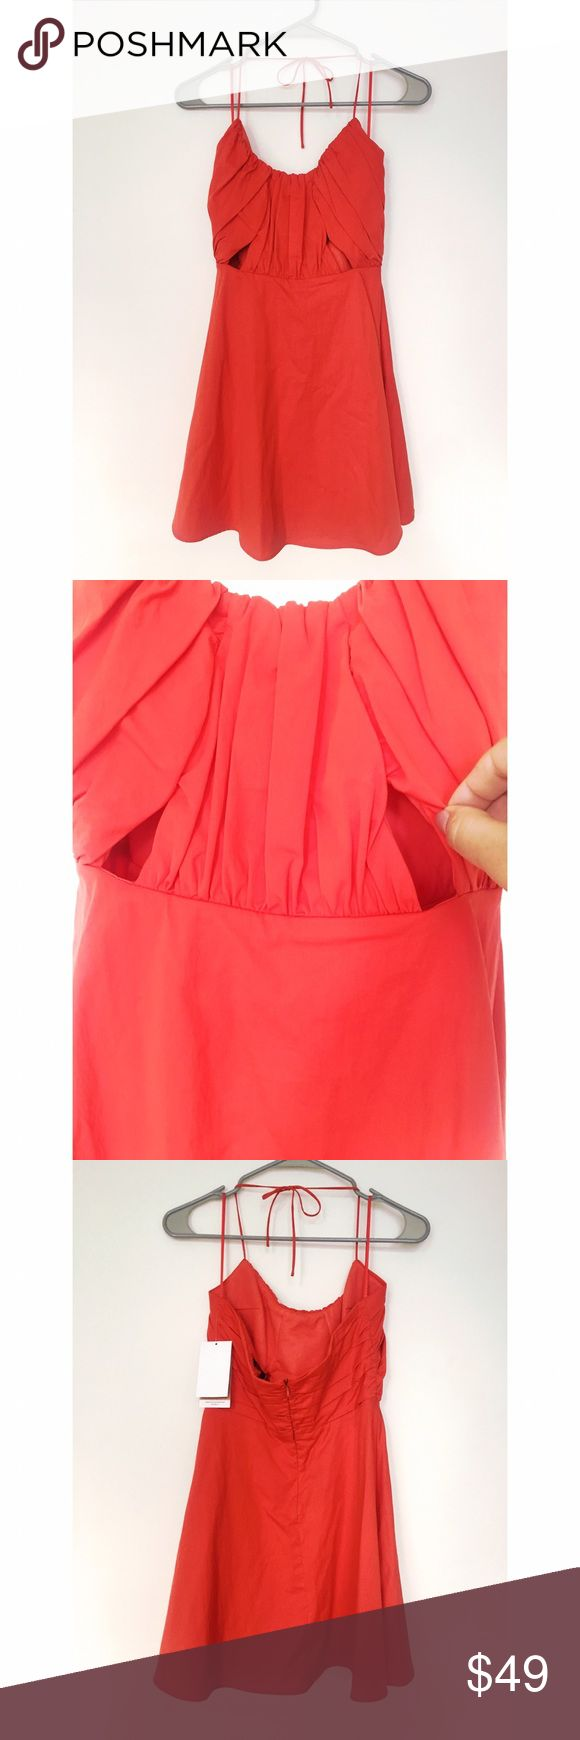 NWT Zara Blood Orange Halter Summer Dress This dress is gorgeous! NWT, it is perfect for graduation or a special summer occasion. Halter top, zip back. Zara Dresses Mini